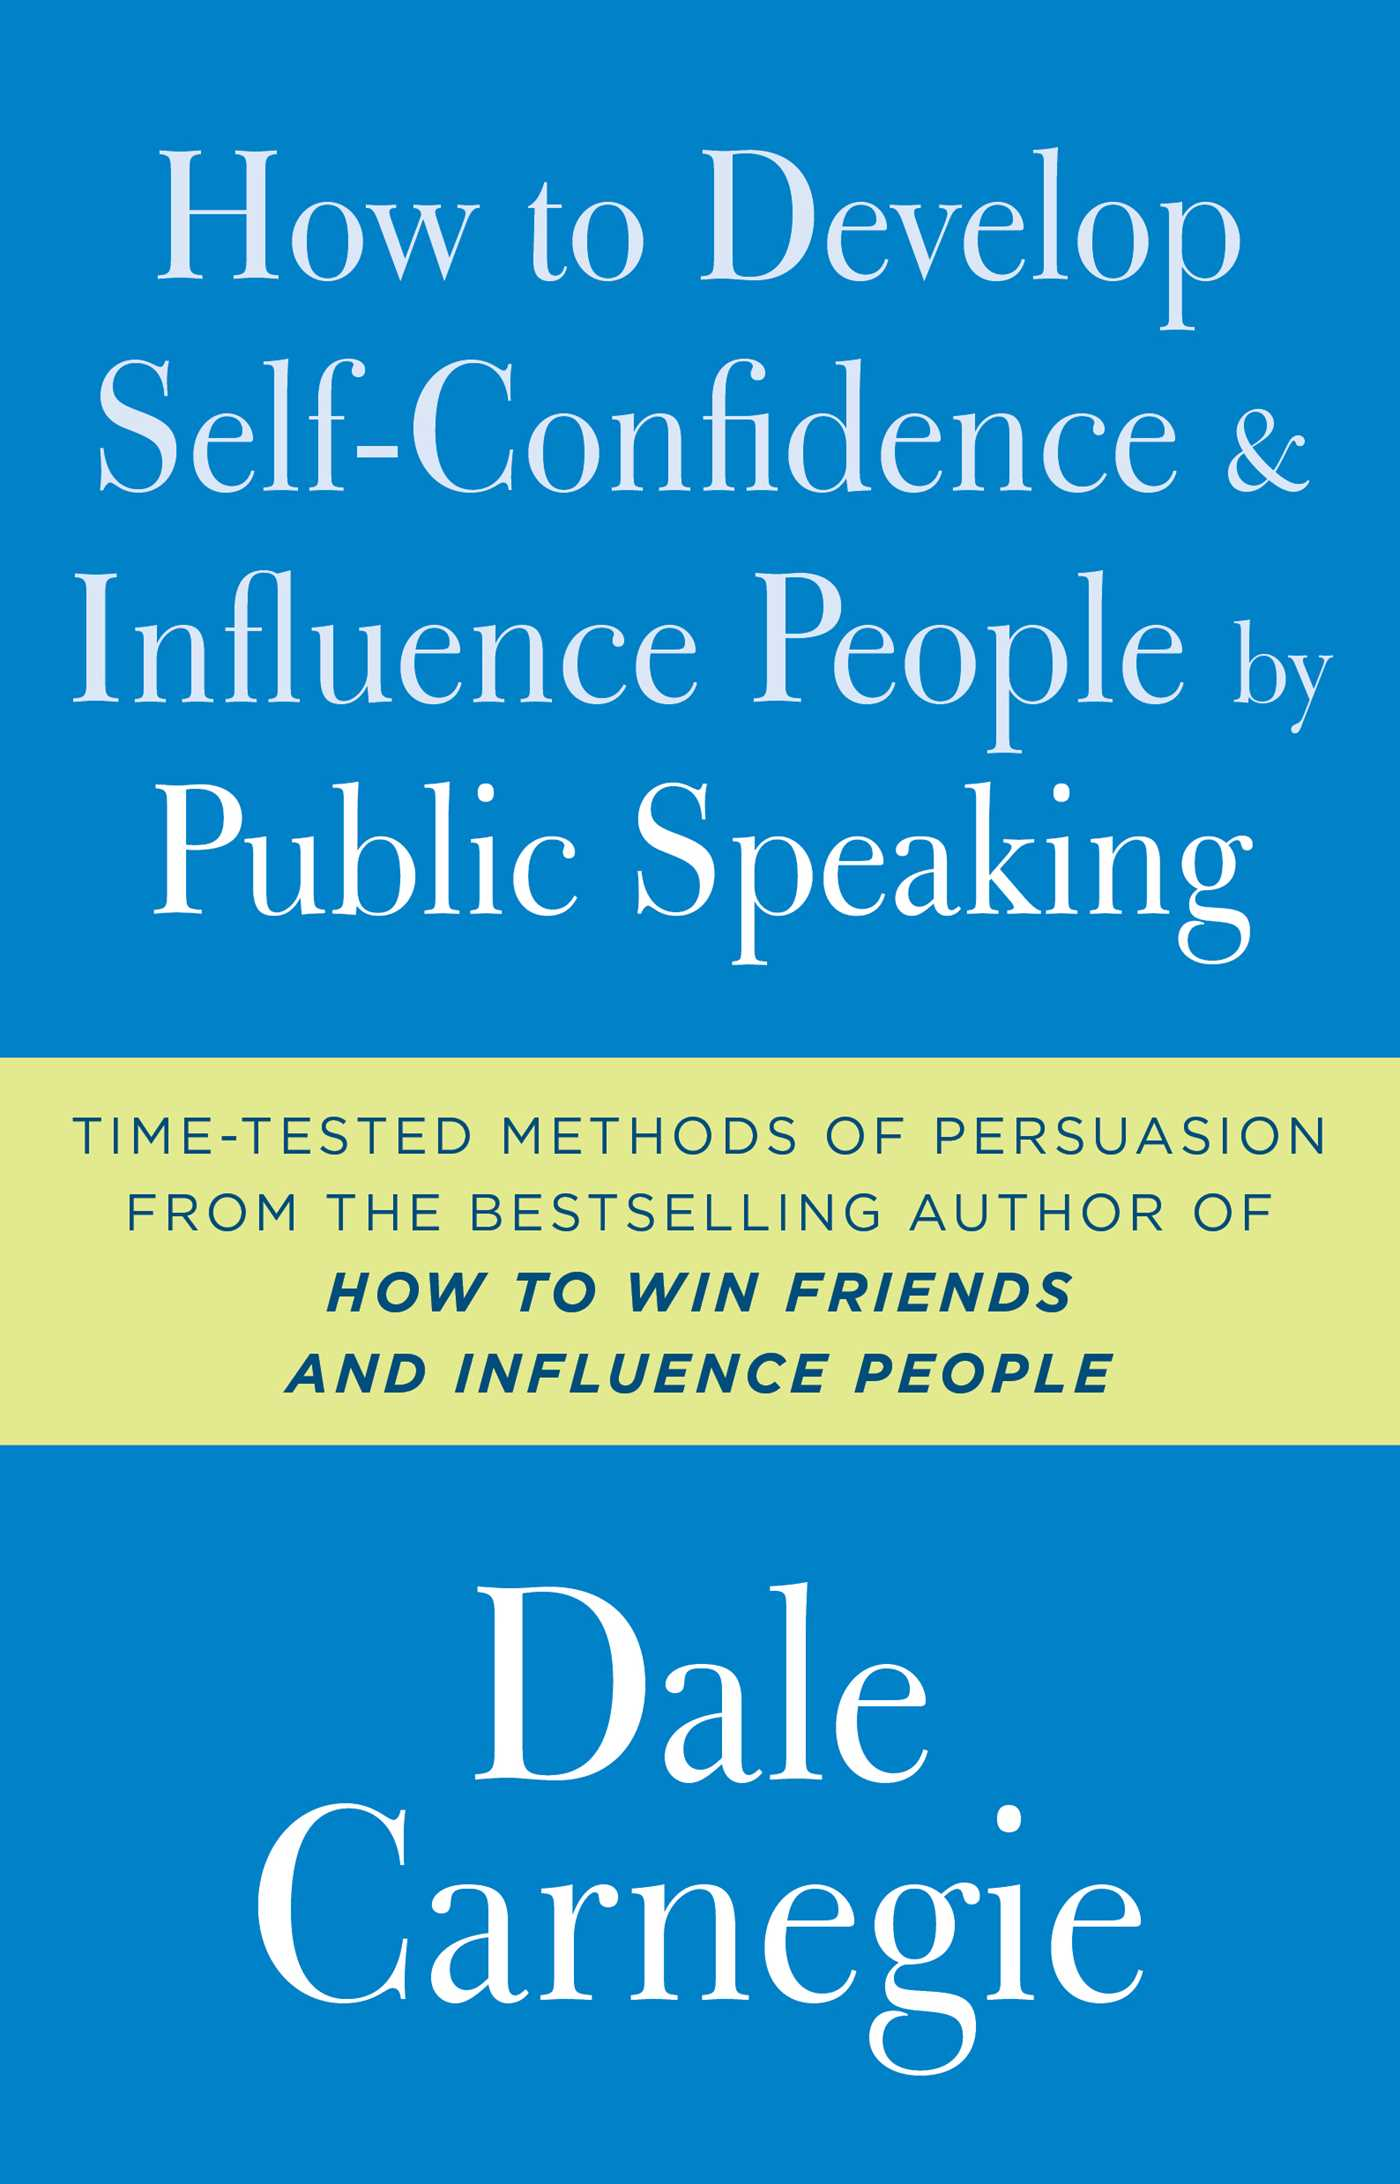 Book Cover Image (jpg): How to Develop Self-Confidence and Influence People  by Public Speaking